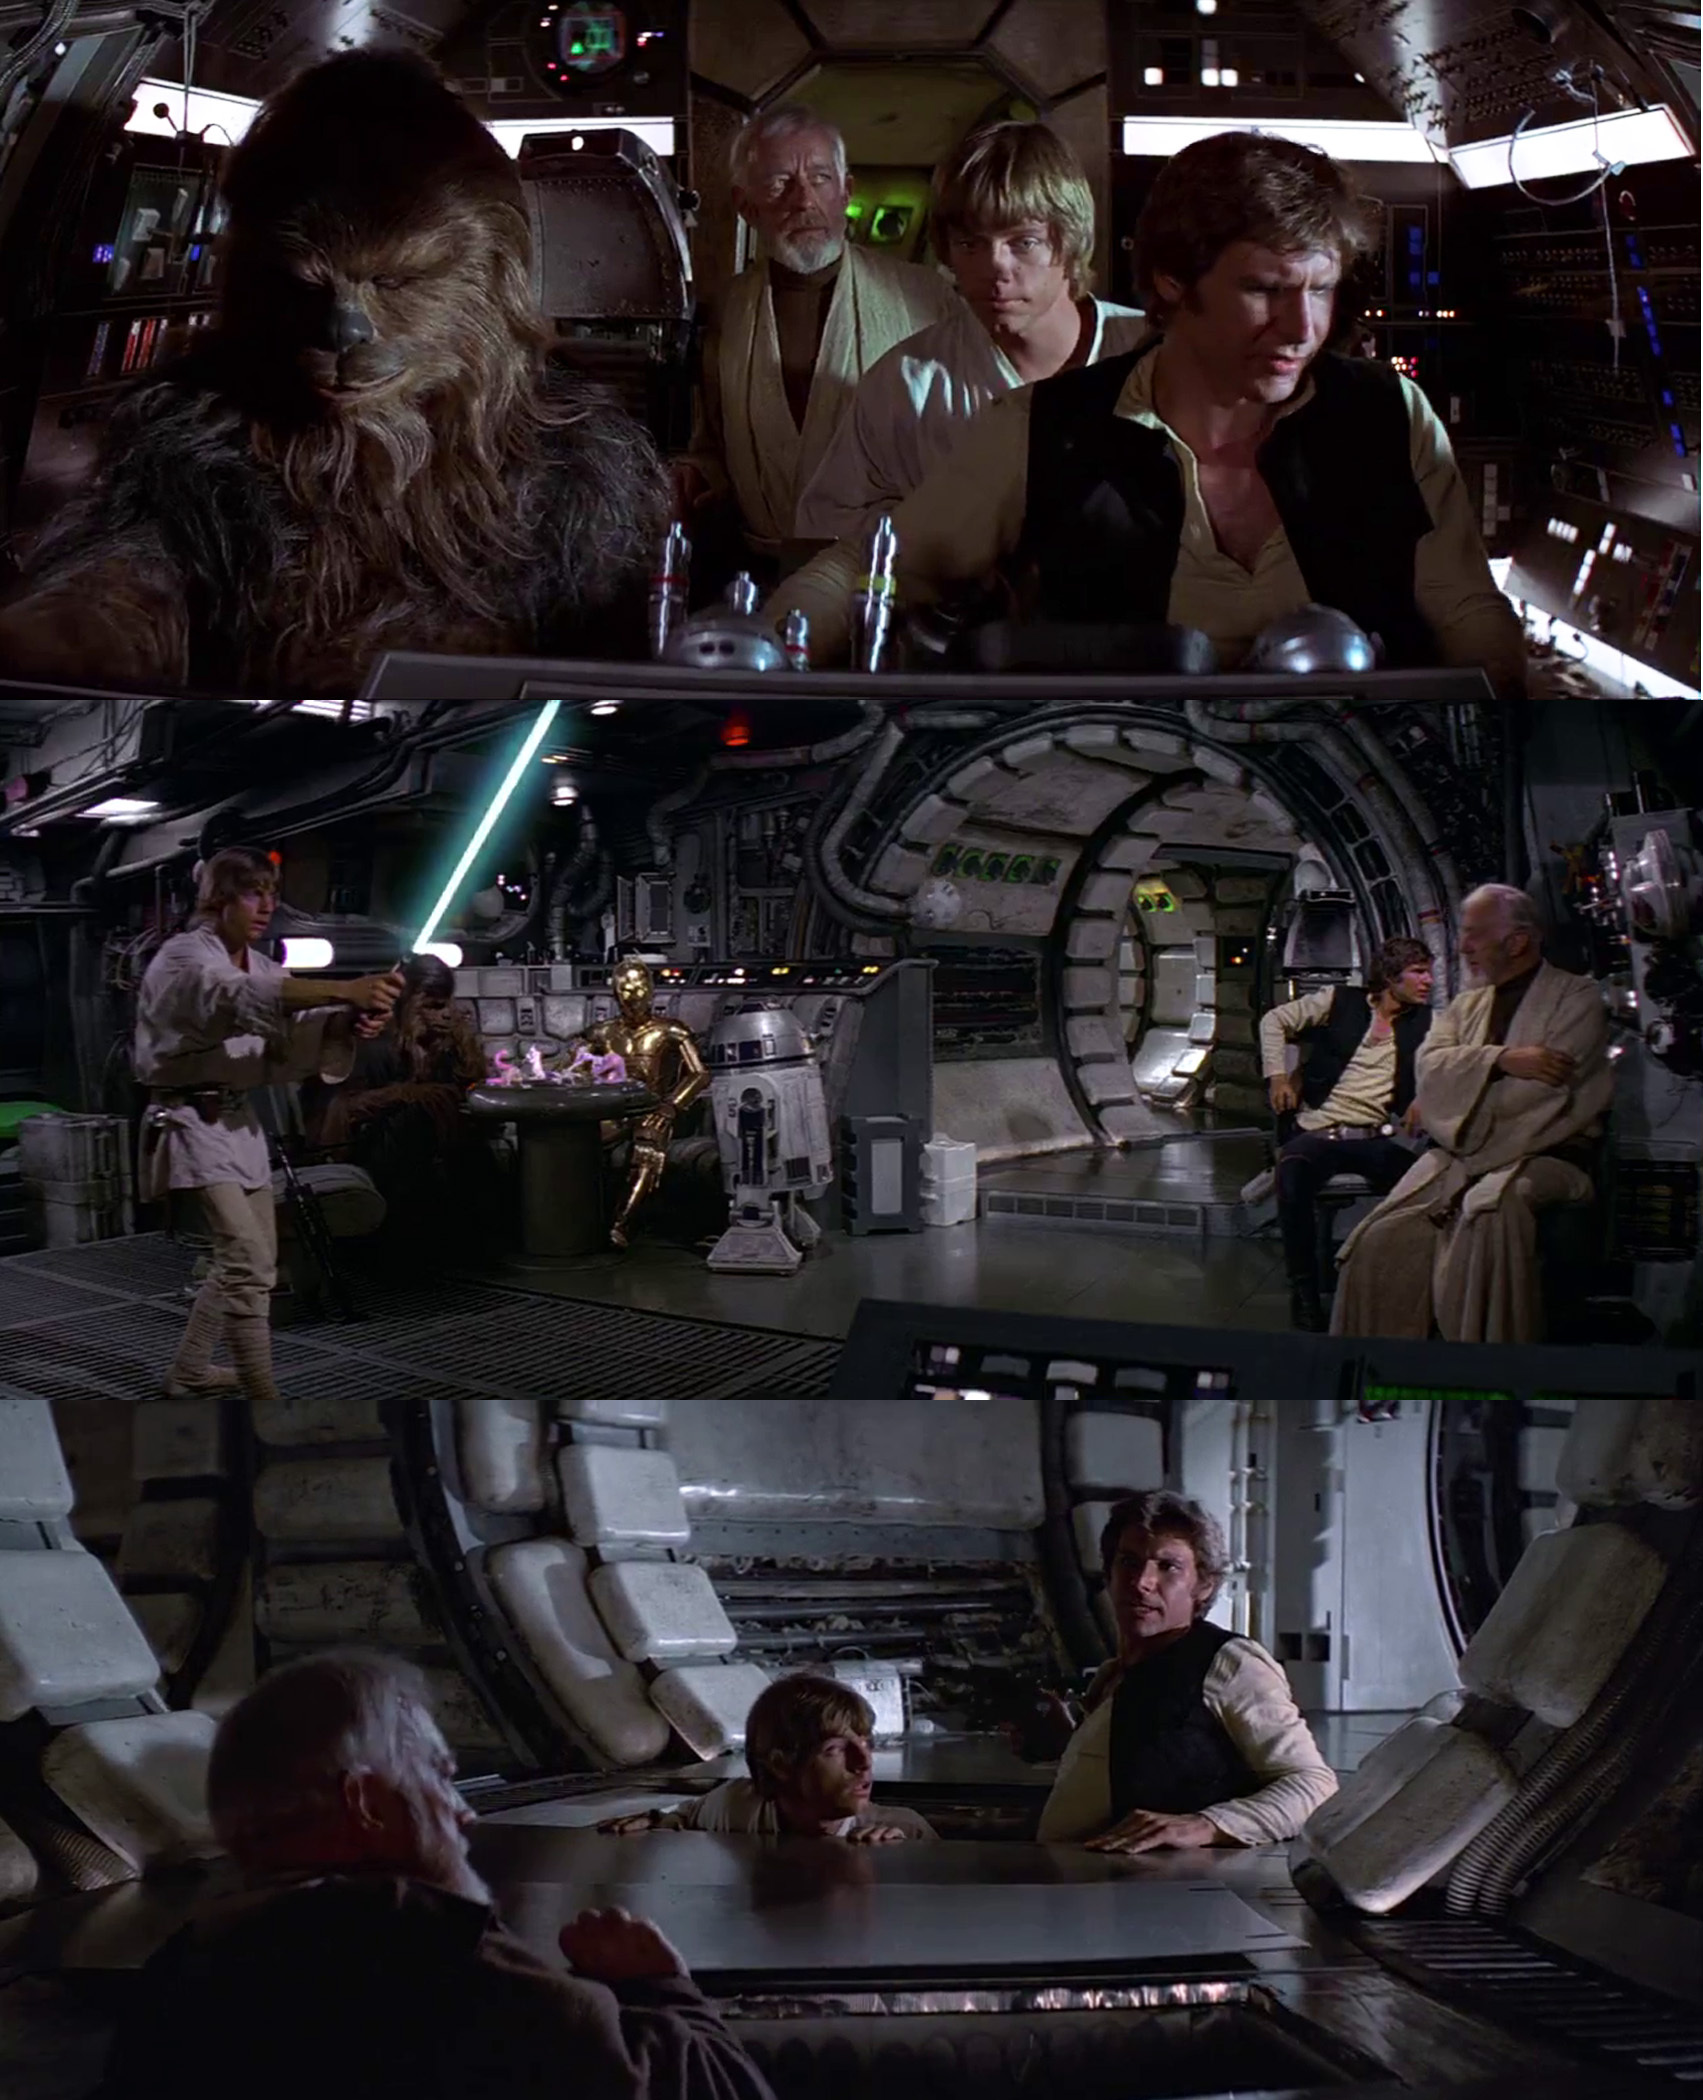 starwars_screenshots1